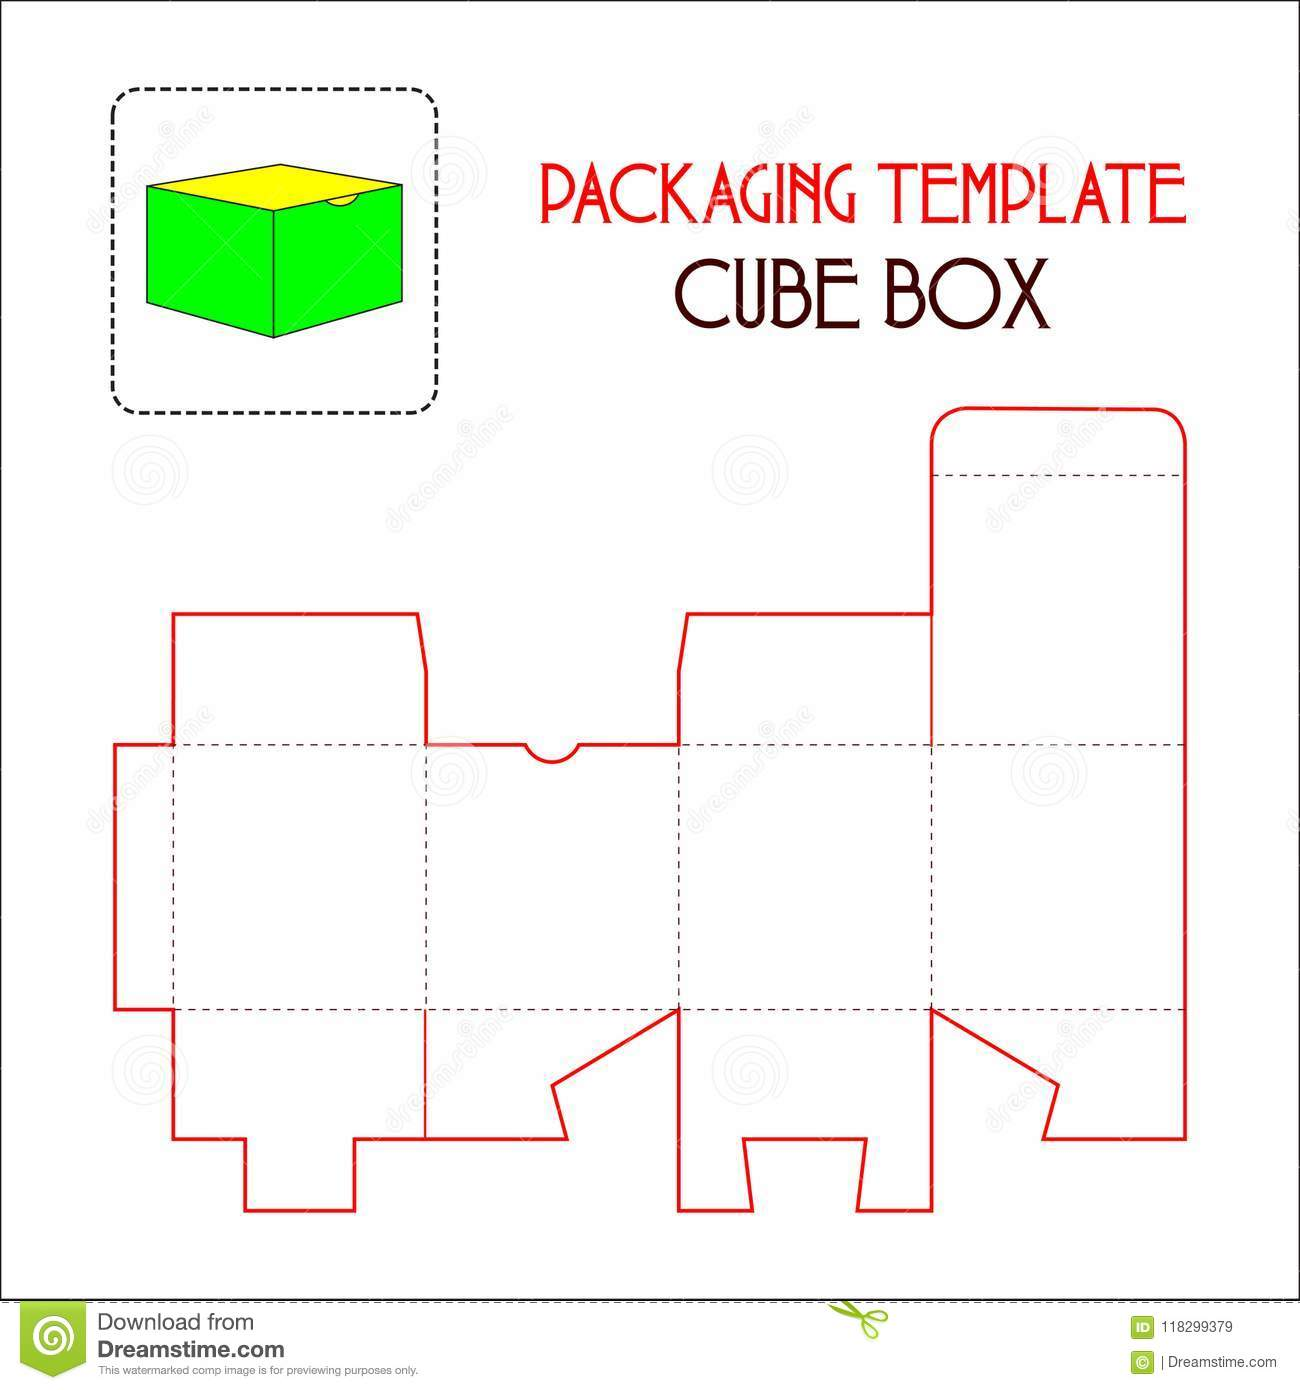 packaging template cube box stock vector illustration of clean